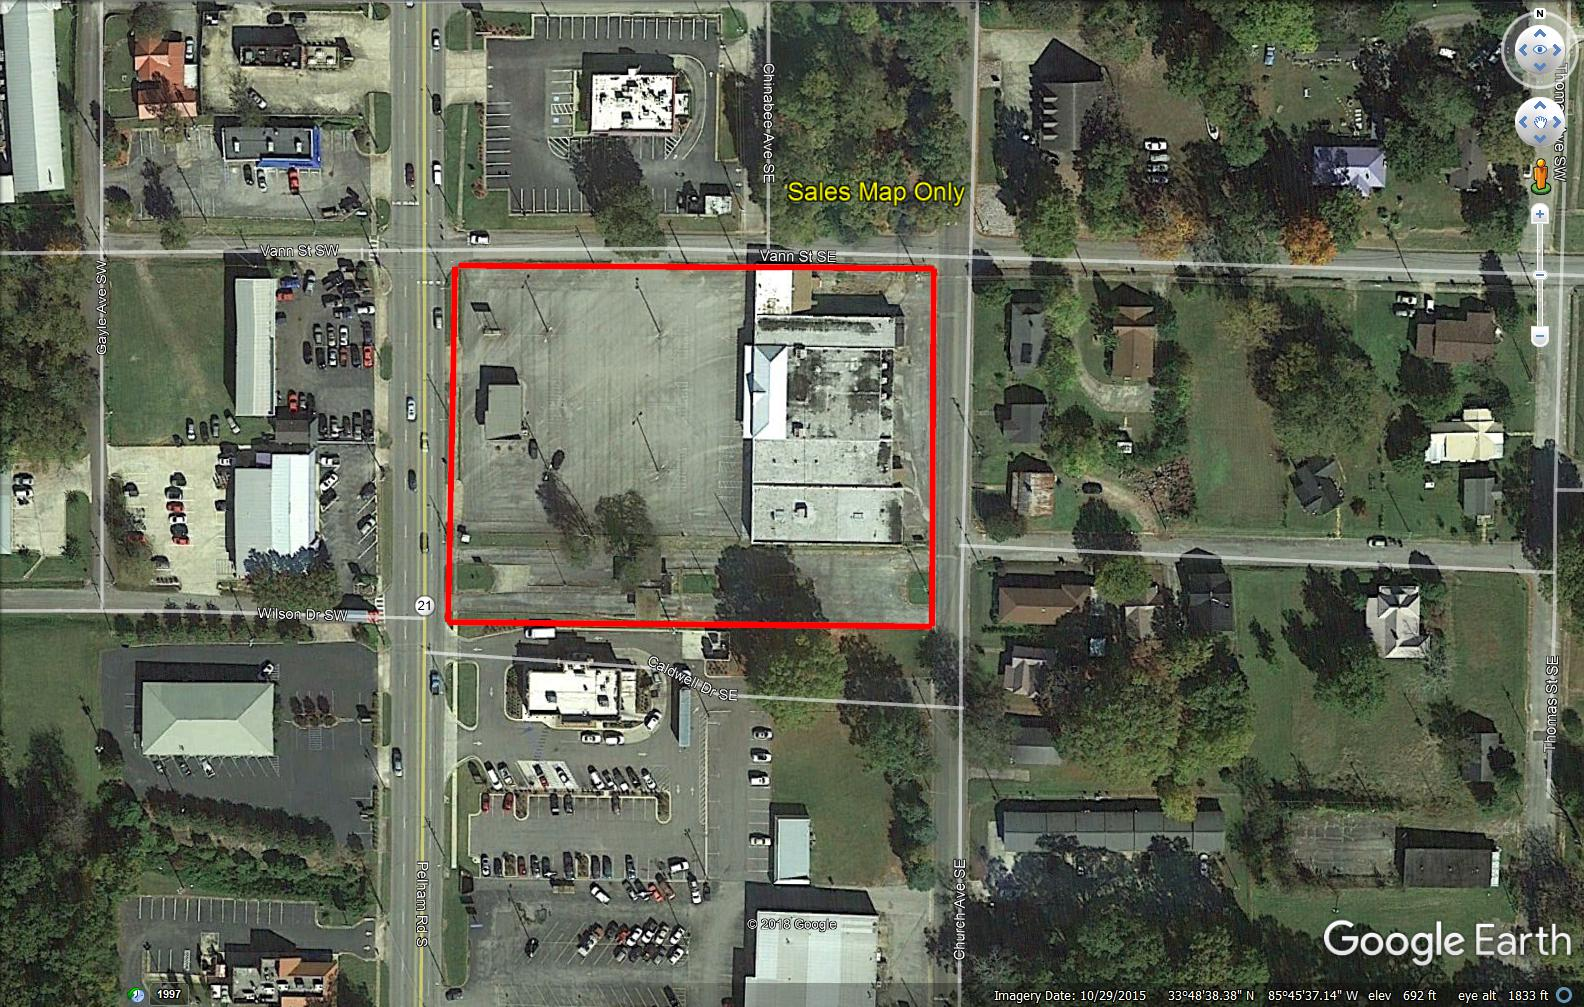 Alabama (Jacksonville) 3 Commercial Buildings Selling as